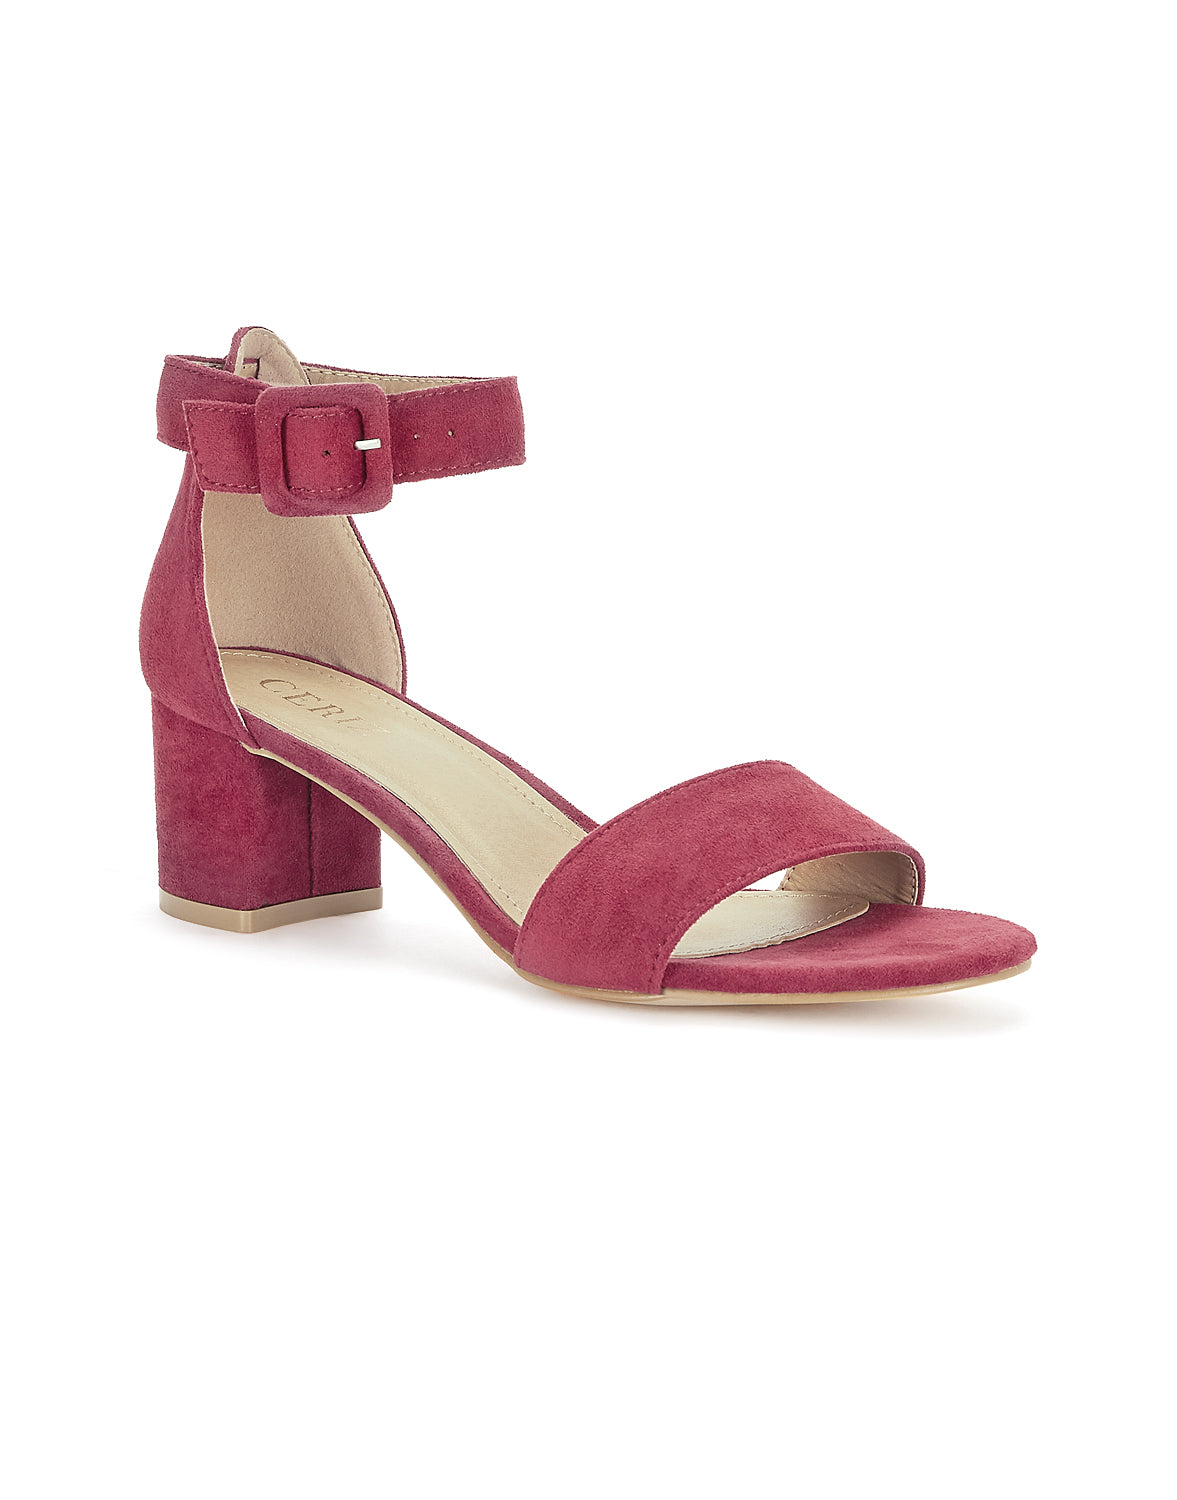 Percy Stunning Burgundy Sandals